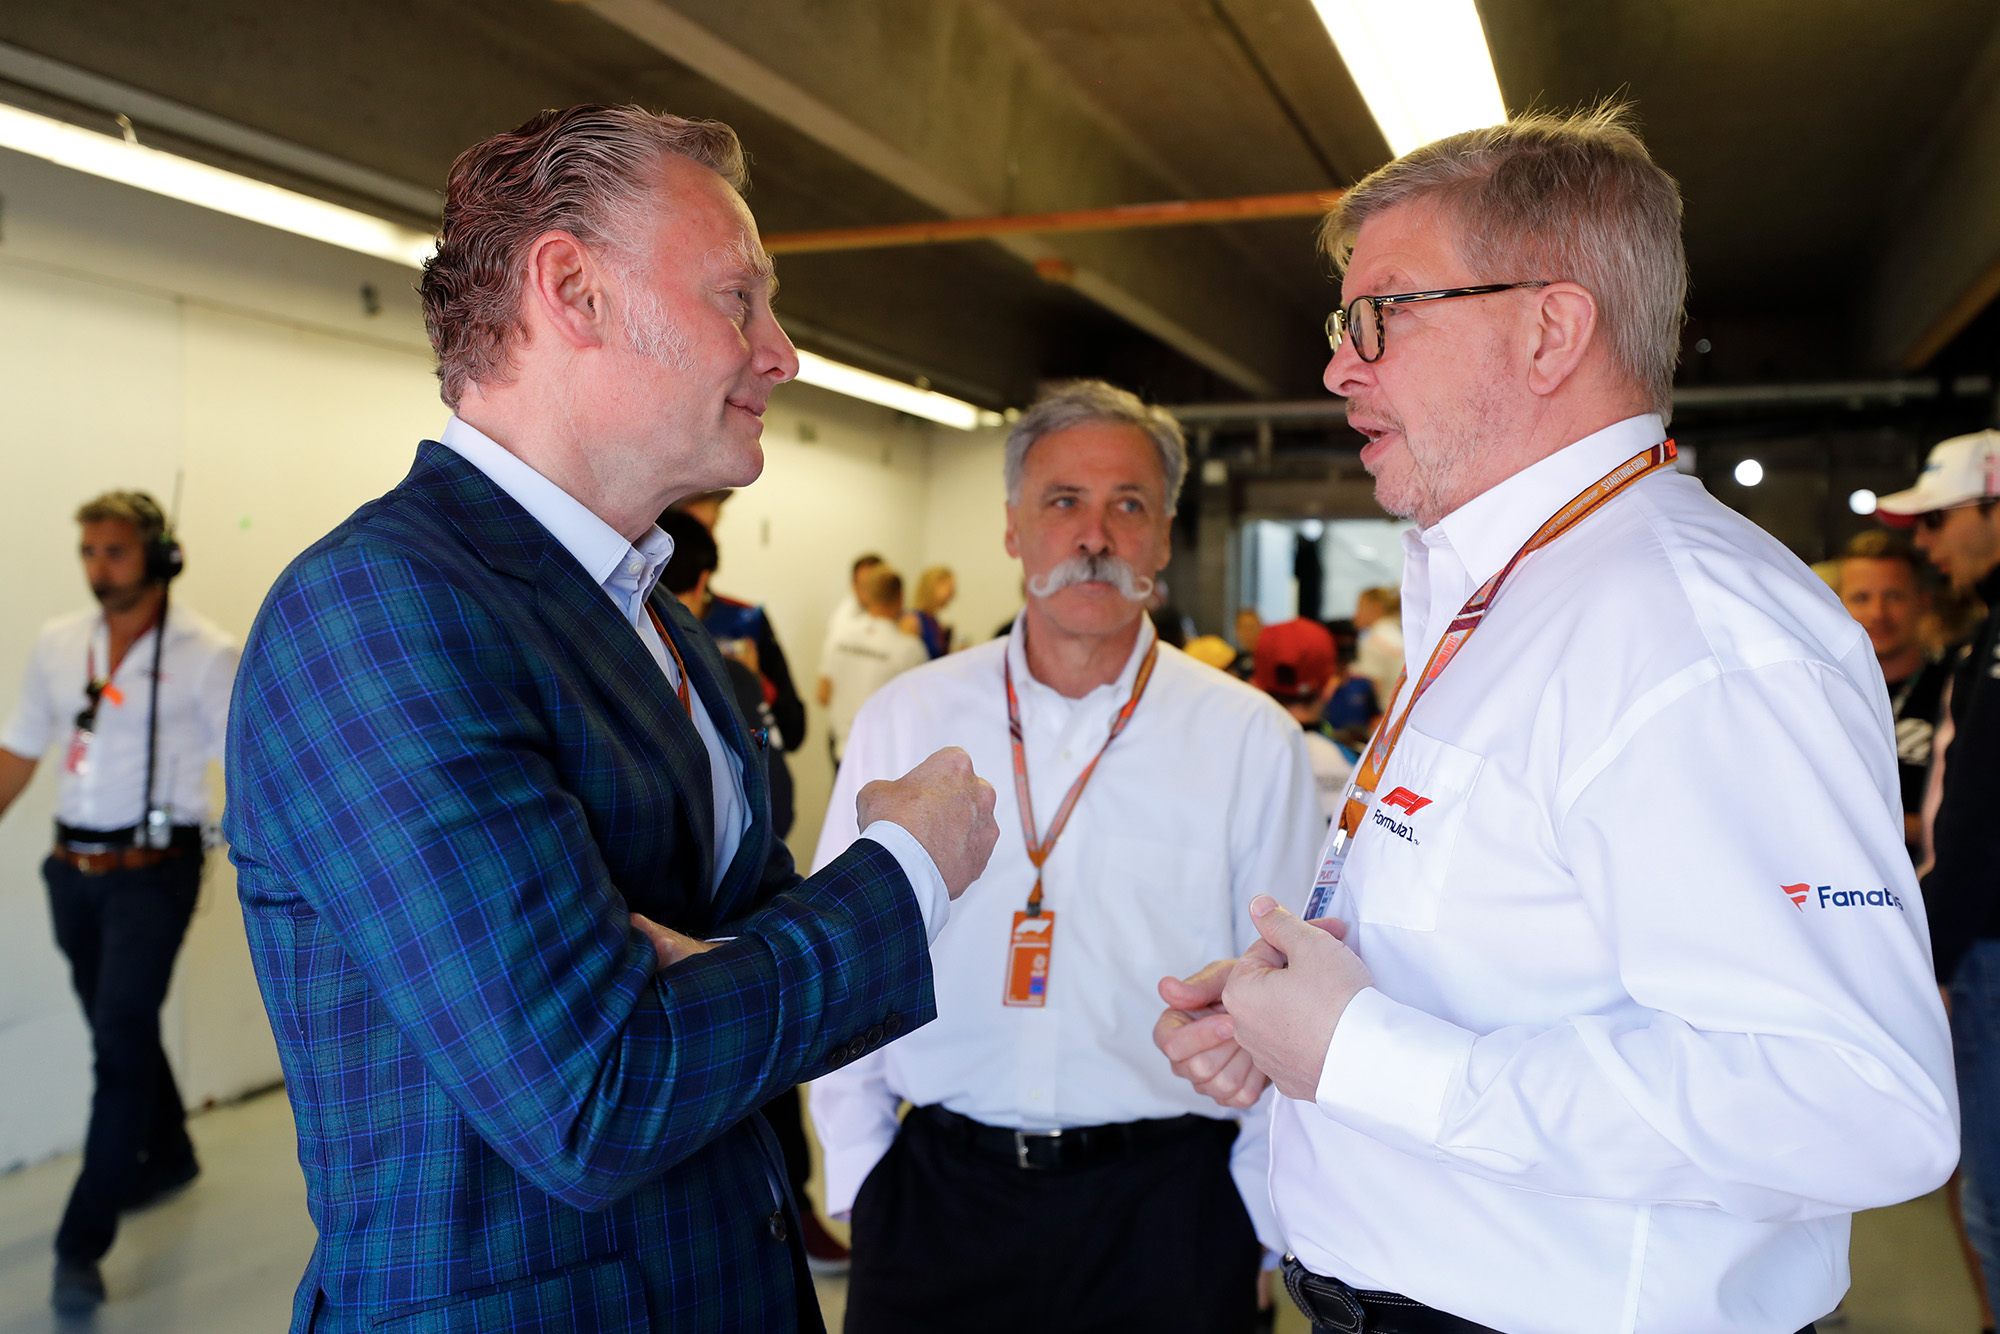 Sean Bratches speaks with Ross Brawn and Chase Carey in an F1 pit